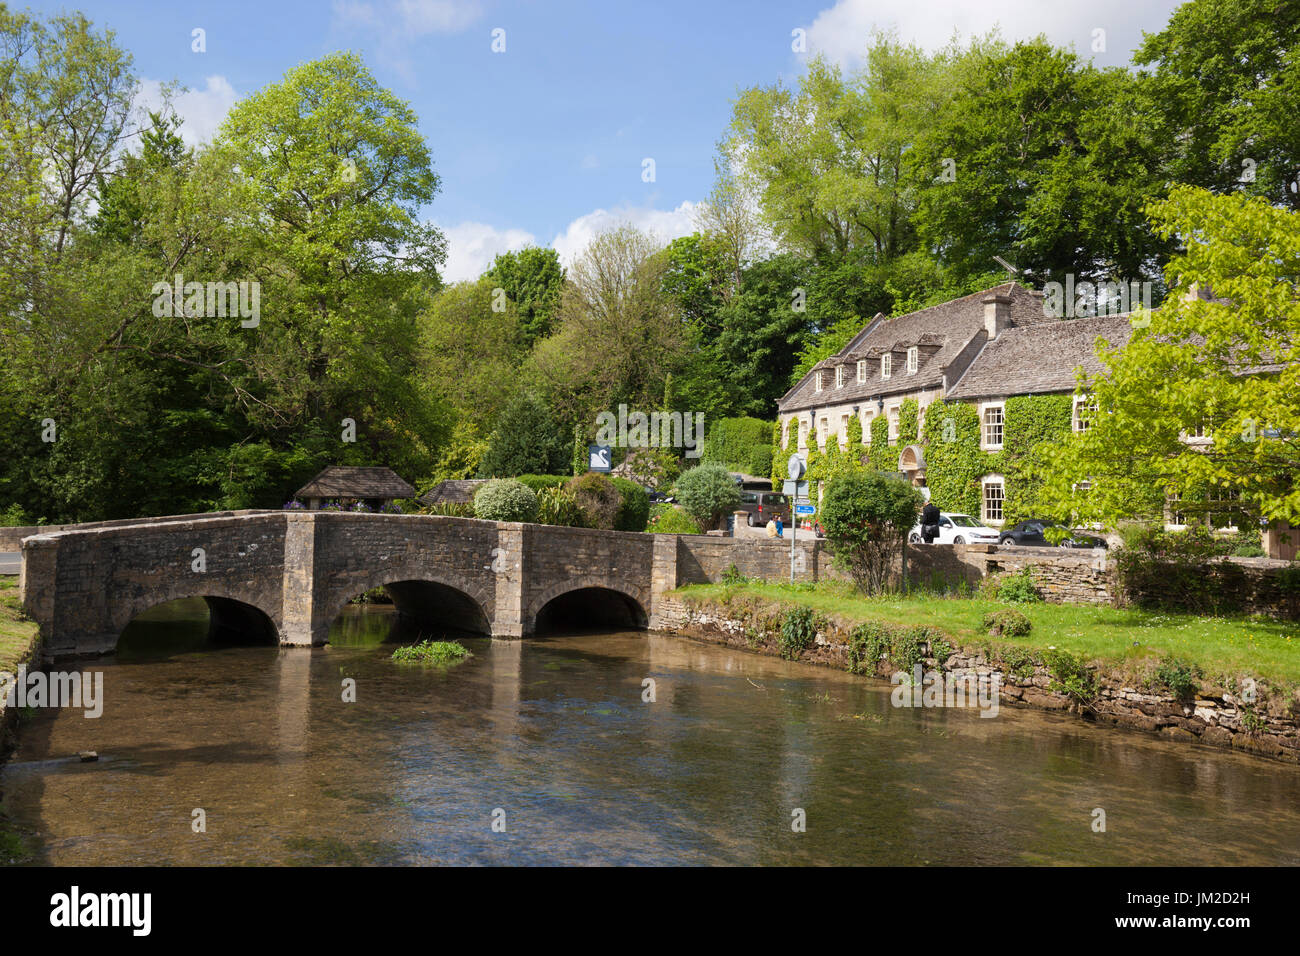 River Coln and The Swan Hotel, Bibury, Cotswolds, Gloucestershire, England, United Kingdom, Europe - Stock Image